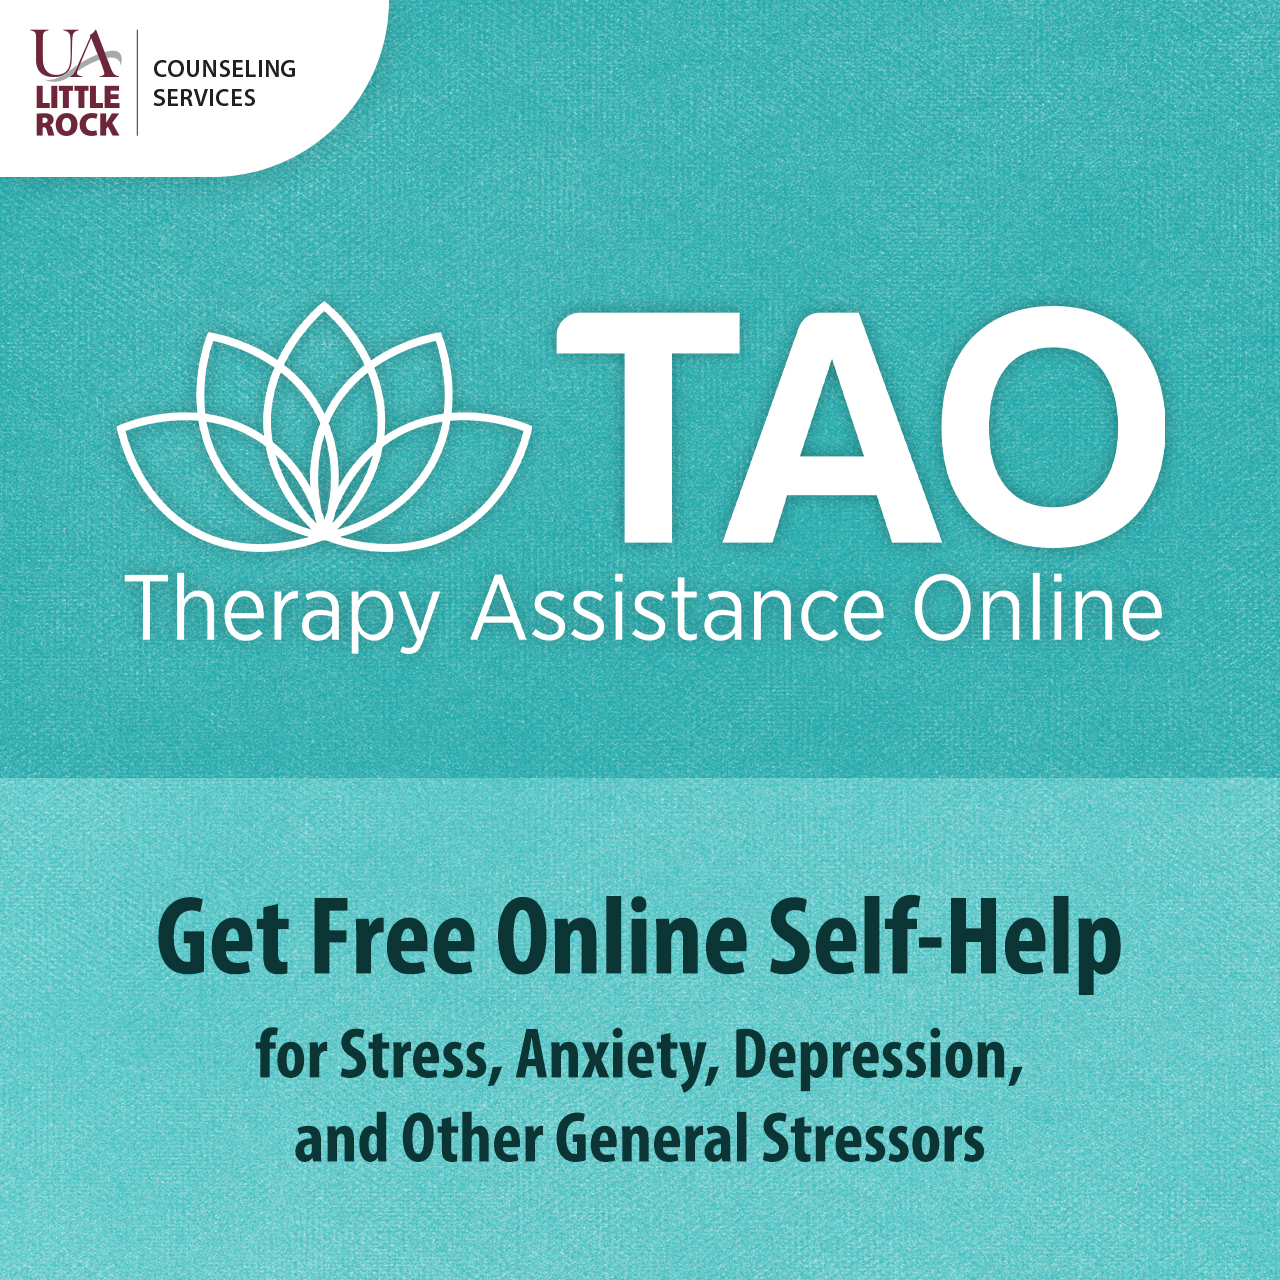 UA Little Rock addresses mental health challenges brought on by the pandemic by adding TAO Connect's suite of digital mental health tools to its counseling center's offerings.